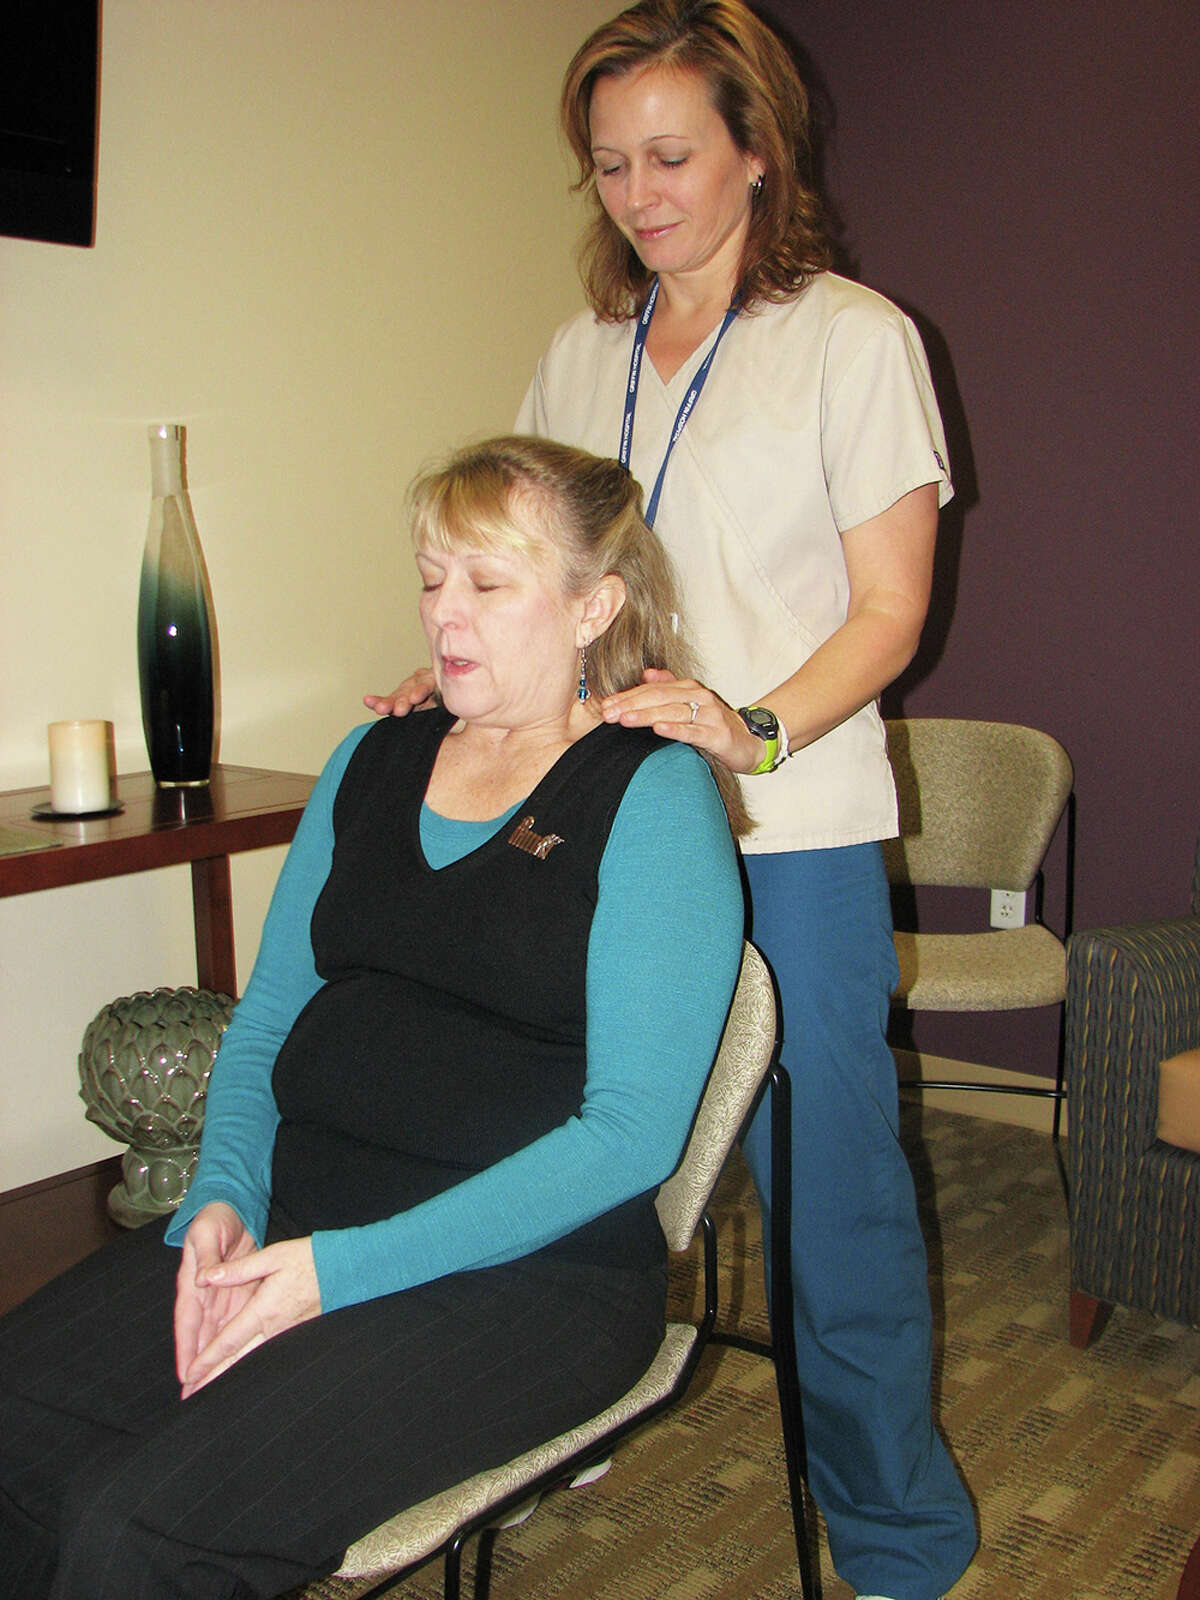 Griffin Hospital will offer a Reiki Level 1 Workshop July9. The ancient healing method promotes relaxation by relieving energy blockages in the body.